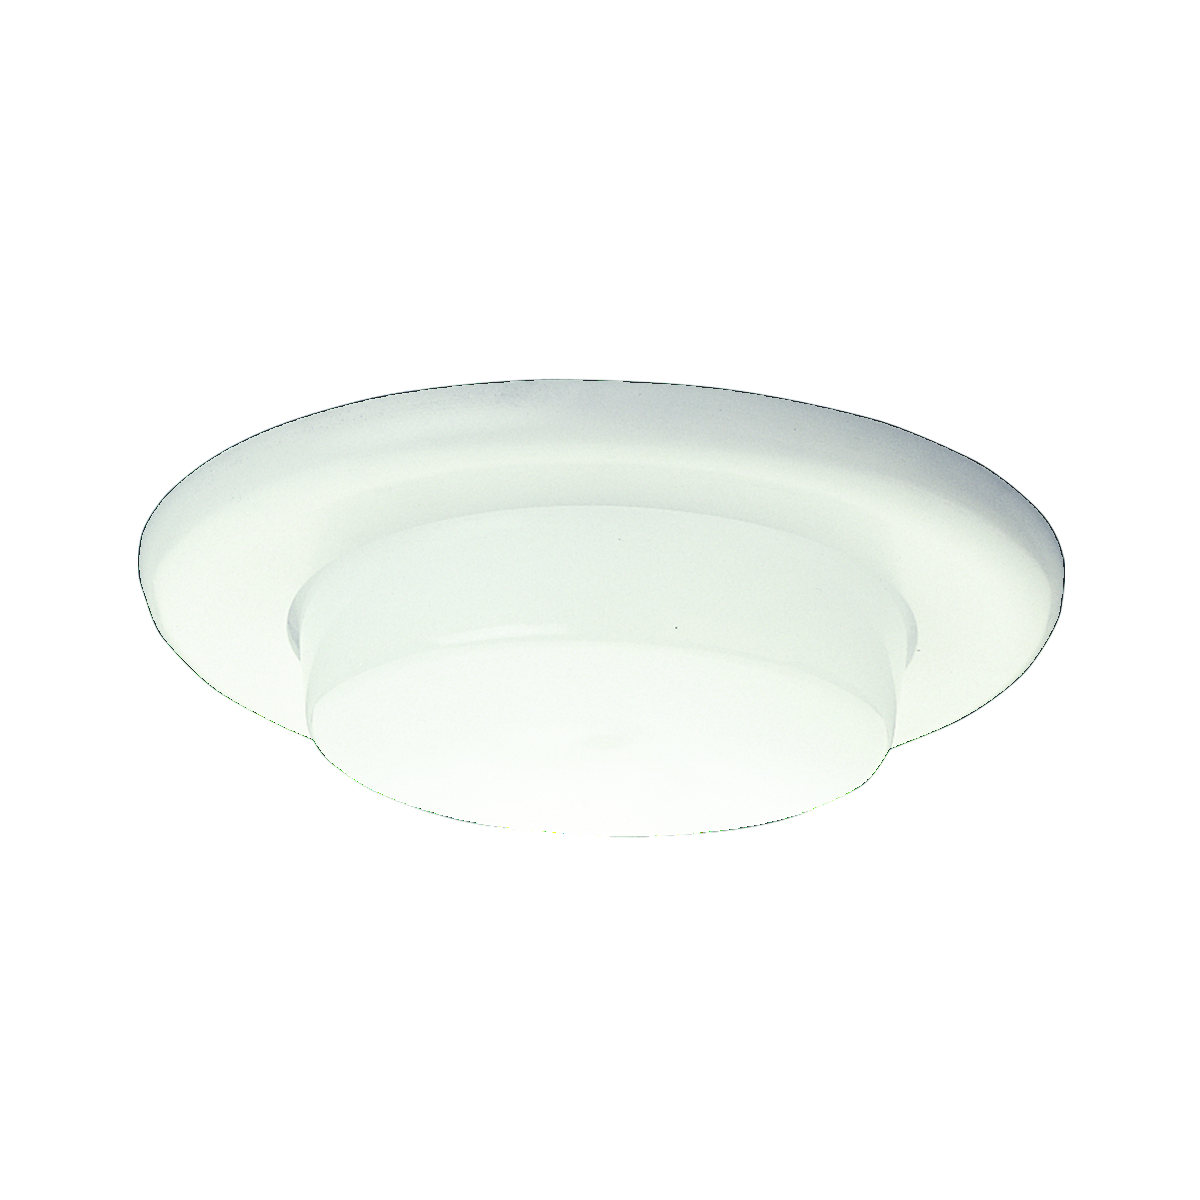 Hubbell Prescolite,TL60,Hubbell® TL60 Line Voltage Trim, Shower Trim, Round Baffle Style, 6.000 IN Diameter, Color: White, Compatibility: DBX, IBX, FT, Ceiling Mount